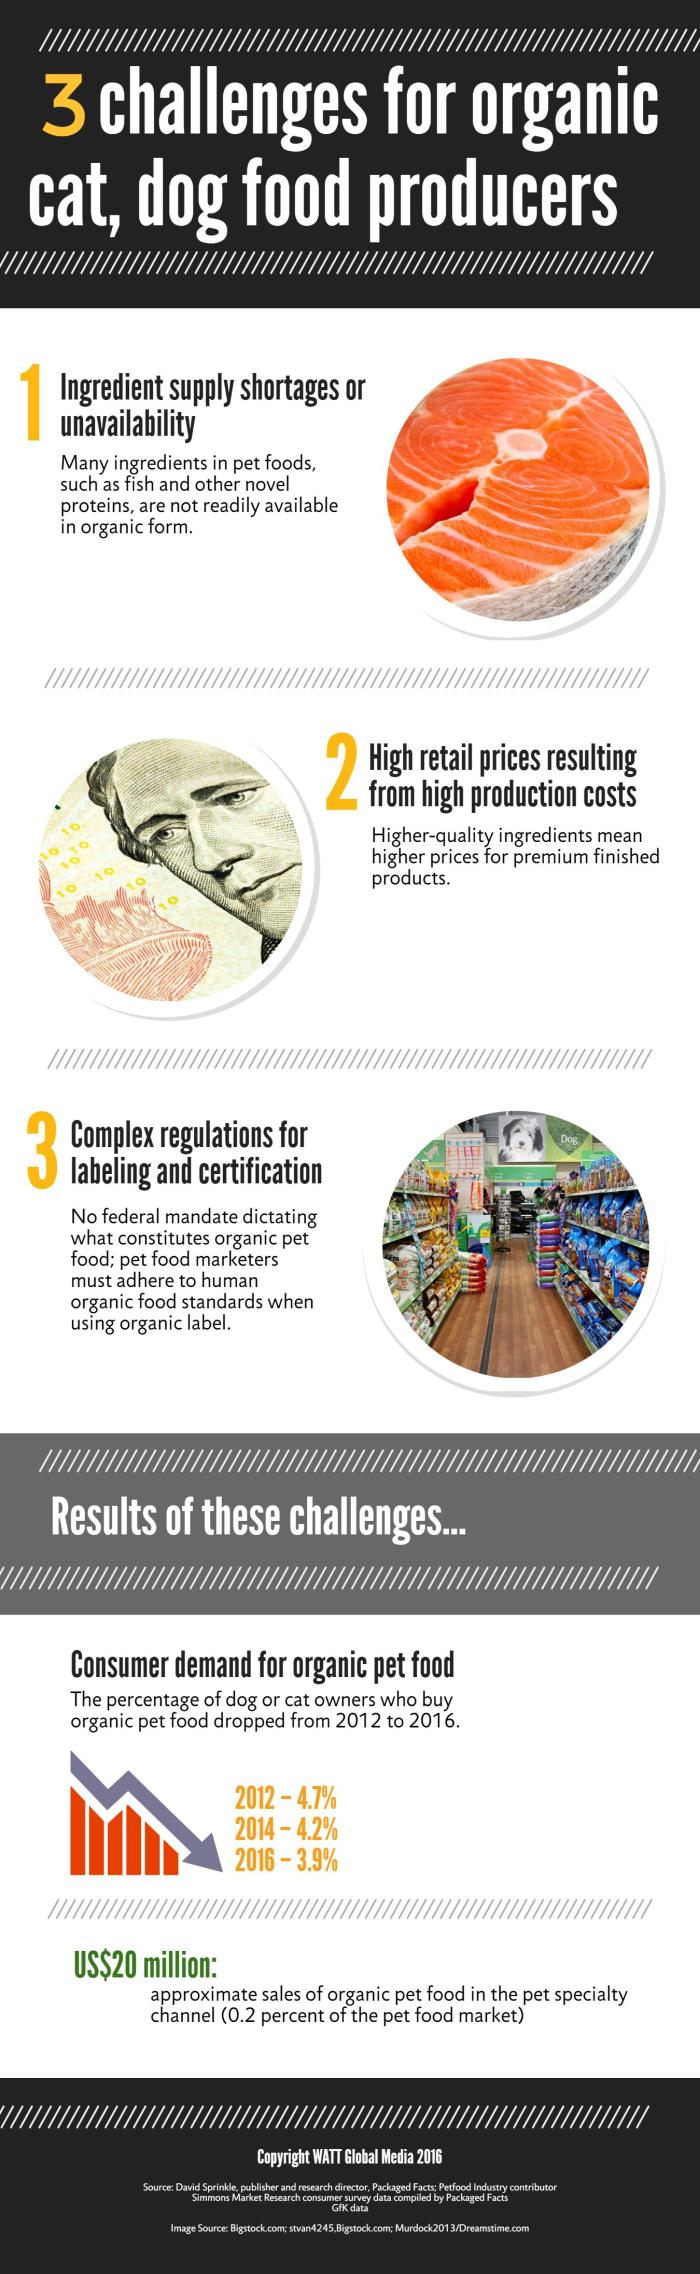 Infographic: 3 challenges for organic cat, dog food producers